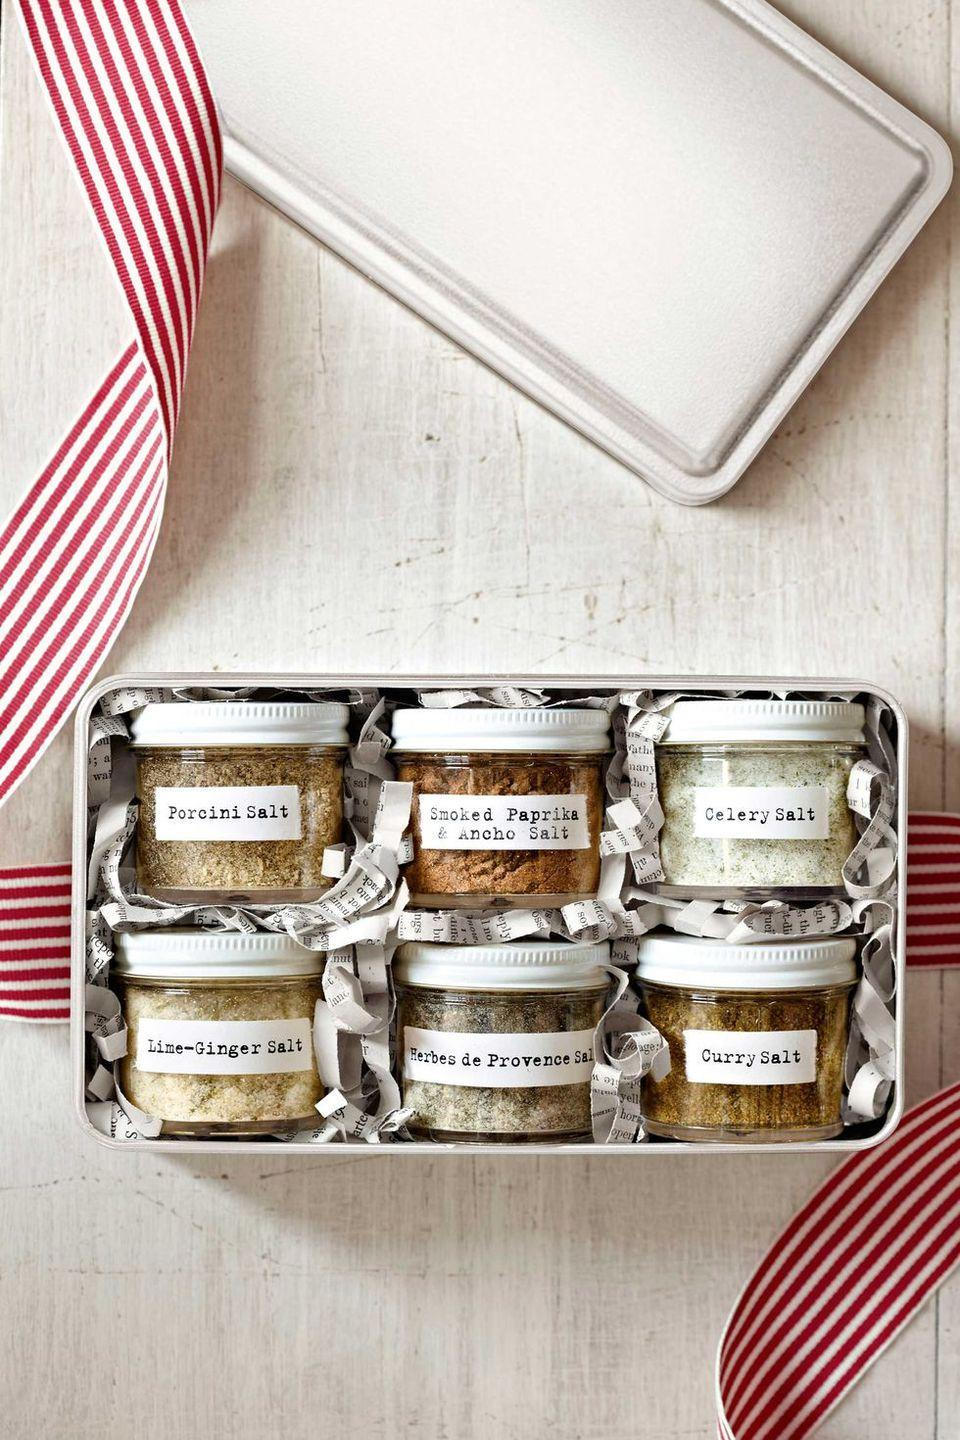 """<p>If the recipient's more of a savory person, make an assortment of salts for a <a href=""""https://www.countryliving.com/food-drinks/g1059/homemade-food-gifts/"""" rel=""""nofollow noopener"""" target=""""_blank"""" data-ylk=""""slk:food gift"""" class=""""link rapid-noclick-resp"""">food gift</a> with some kick. Bottle in jars, stick on our cute labels, and place in a metal box with shredded newspaper for padding.</p><p><strong><a href=""""https://www.countryliving.com/food-drinks/recipes/a4215/flavored-salts-recipe-clv1212/"""" rel=""""nofollow noopener"""" target=""""_blank"""" data-ylk=""""slk:Get the recipe"""" class=""""link rapid-noclick-resp"""">Get the recipe</a>.</strong></p><p><strong><a class=""""link rapid-noclick-resp"""" href=""""https://www.amazon.com/Clear-Plastic-Jar-White-Balm/dp/B00FFM5JZ4/?tag=syn-yahoo-20&ascsubtag=%5Bartid%7C10050.g.645%5Bsrc%7Cyahoo-us"""" rel=""""nofollow noopener"""" target=""""_blank"""" data-ylk=""""slk:SHOP JARS"""">SHOP JARS</a><br></strong></p>"""